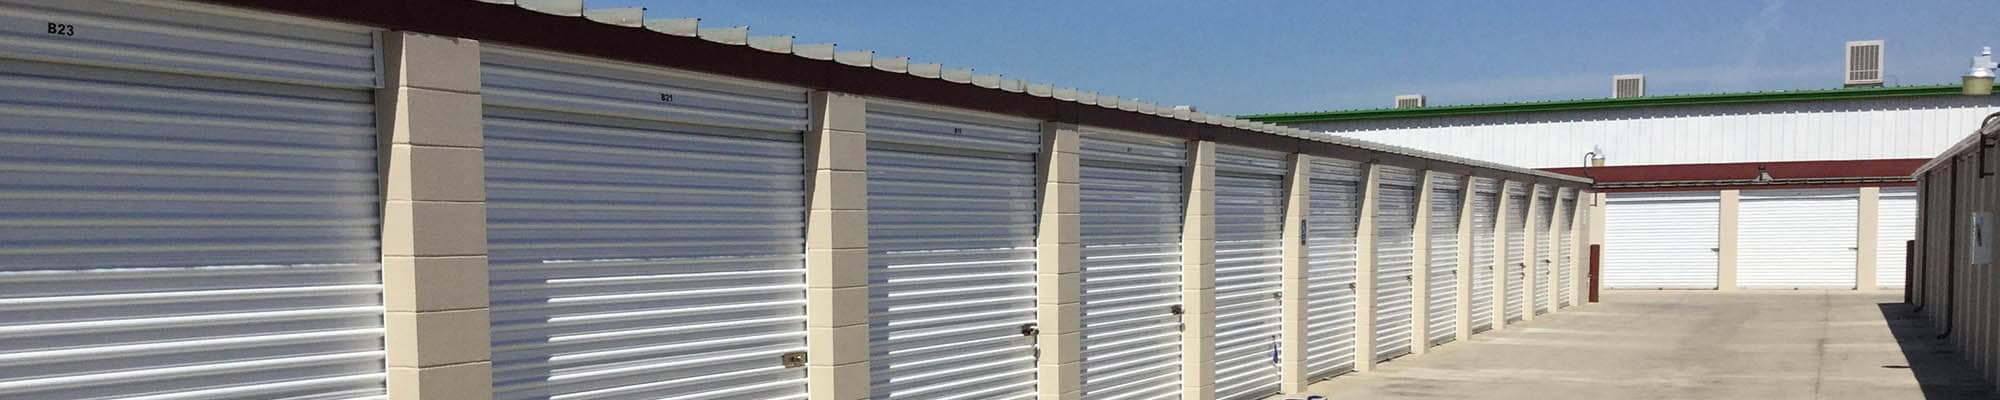 Reviews for our self storage facility in Visalia